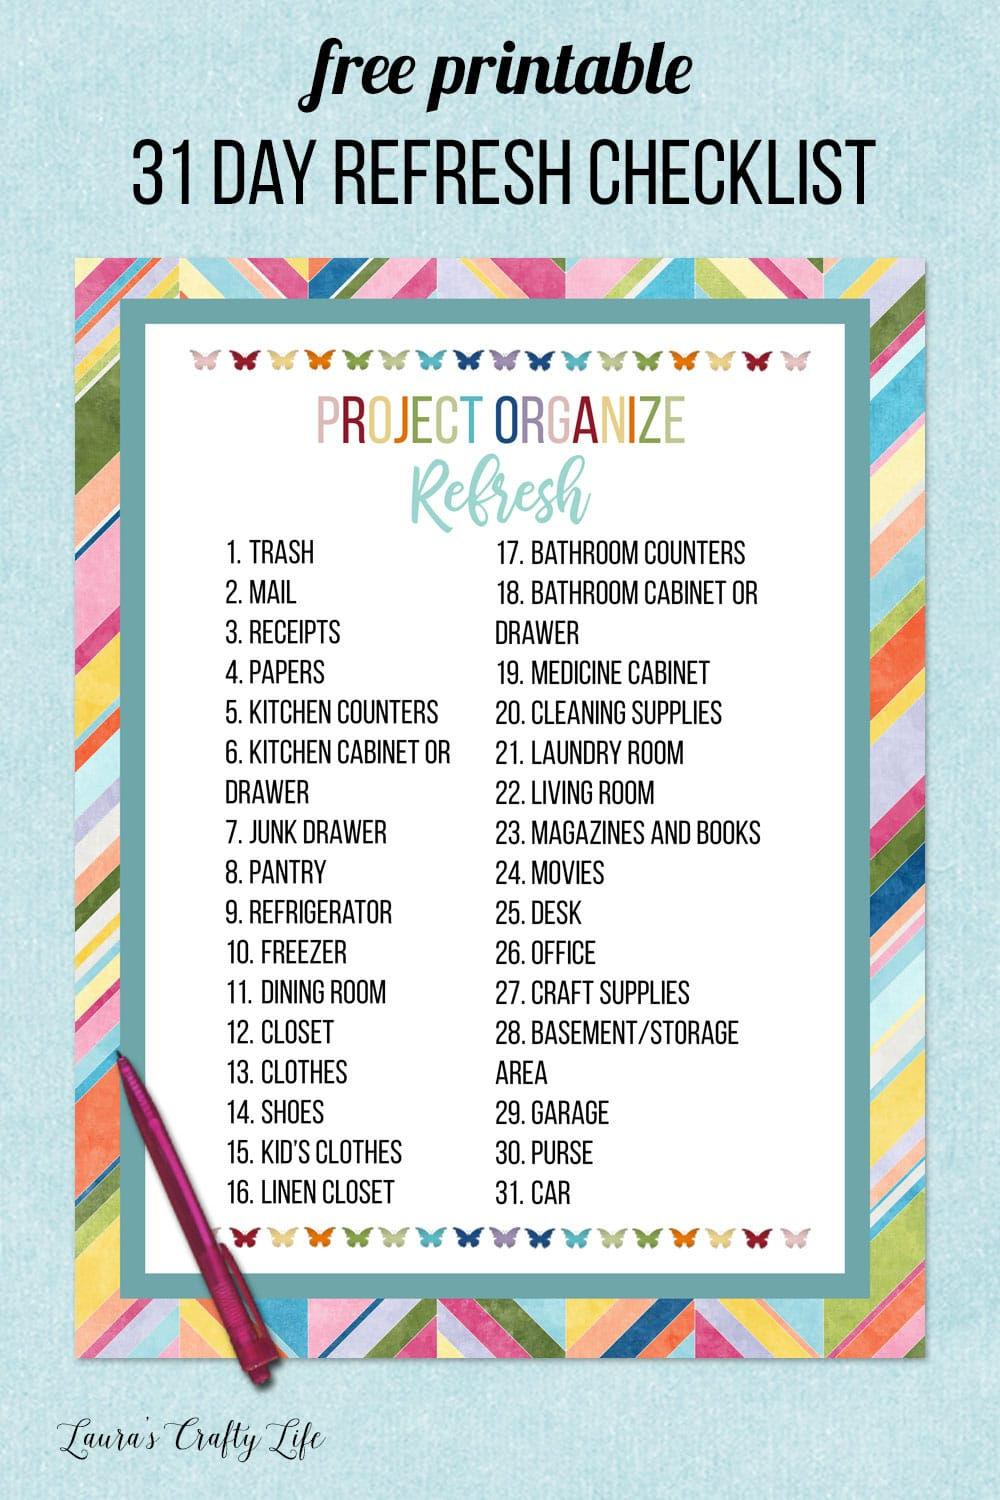 project organize refresh free printable